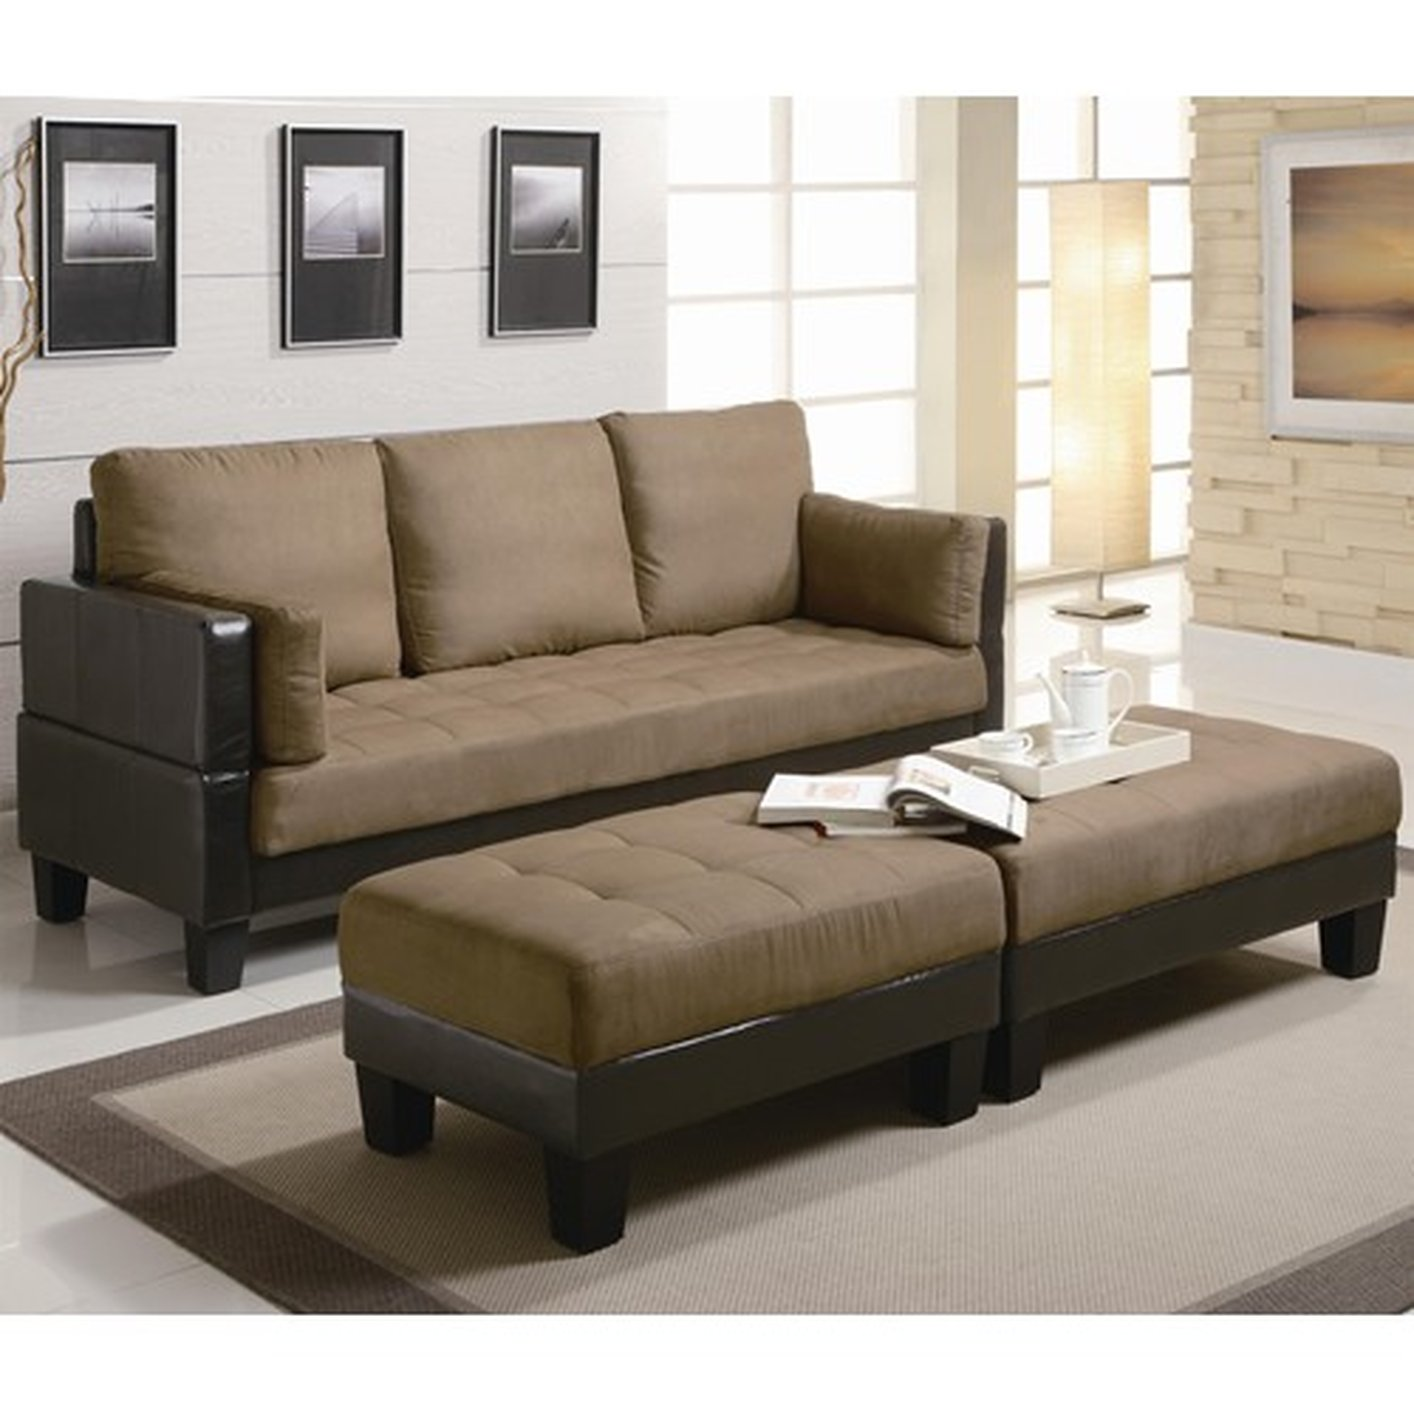 bed and sofa set nailhead trim reclining coaster 300160 brown ottoman steal a